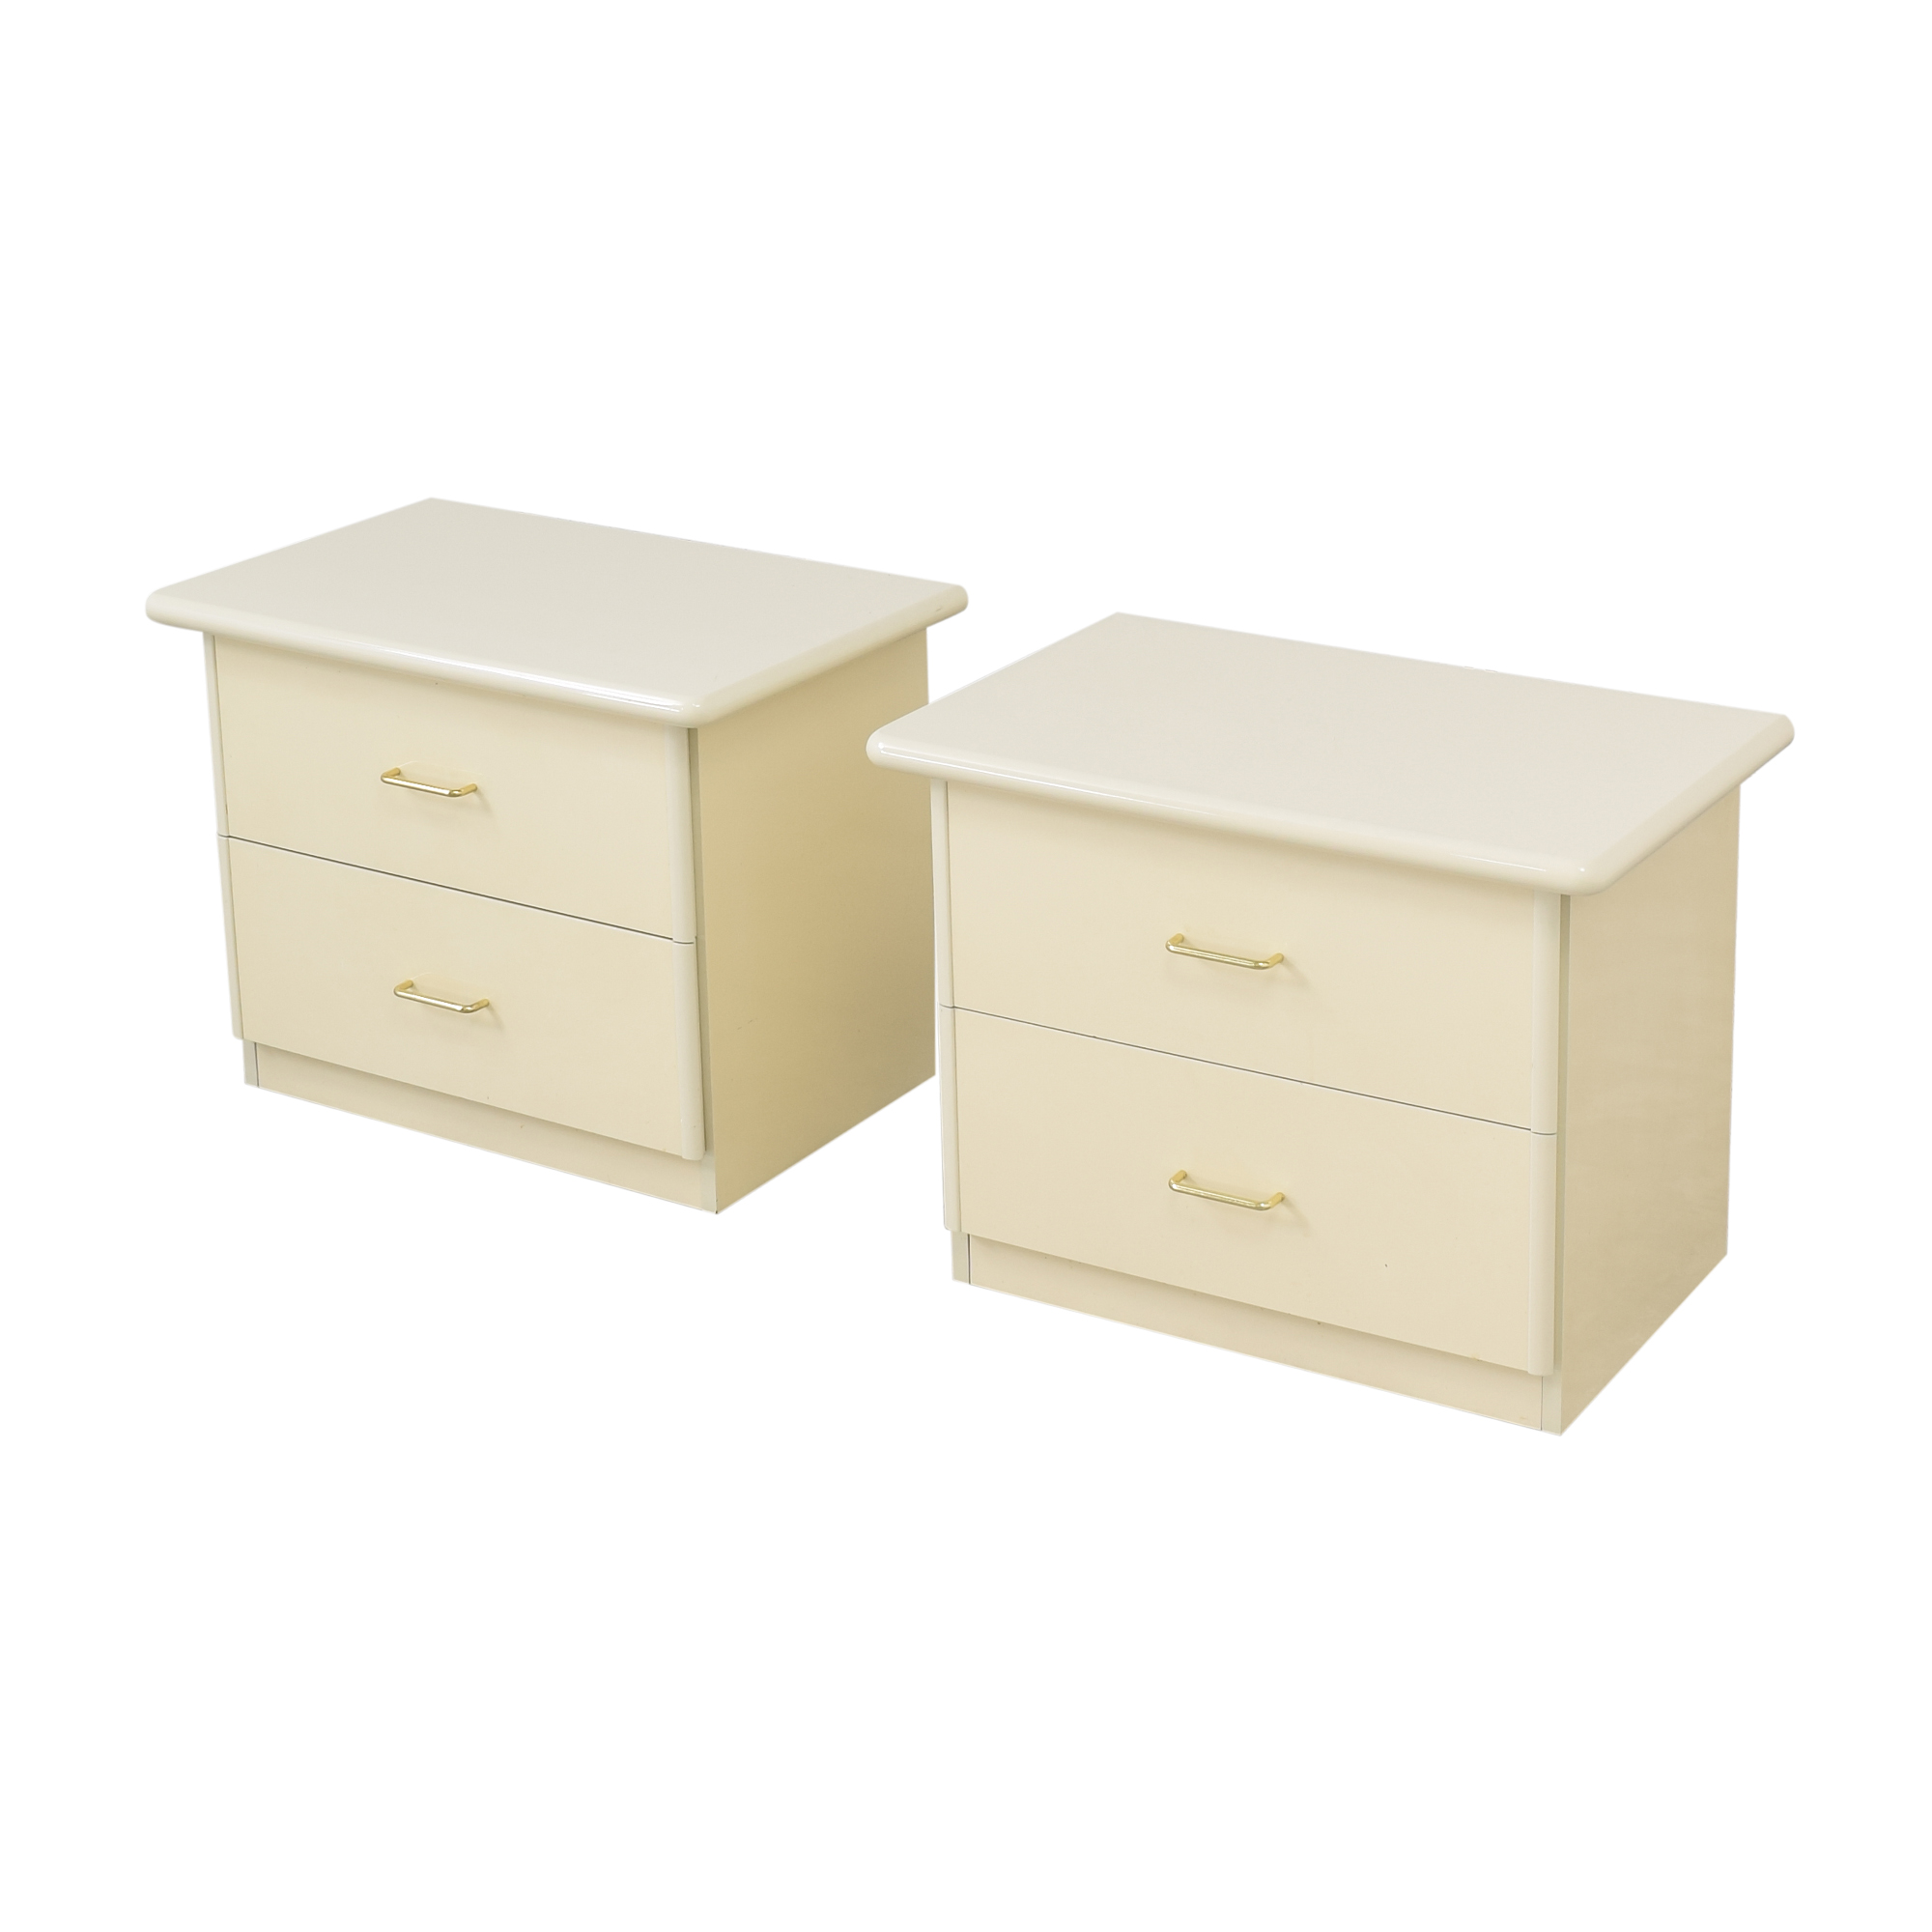 Seamans Seamans Two Drawer Nightstands used